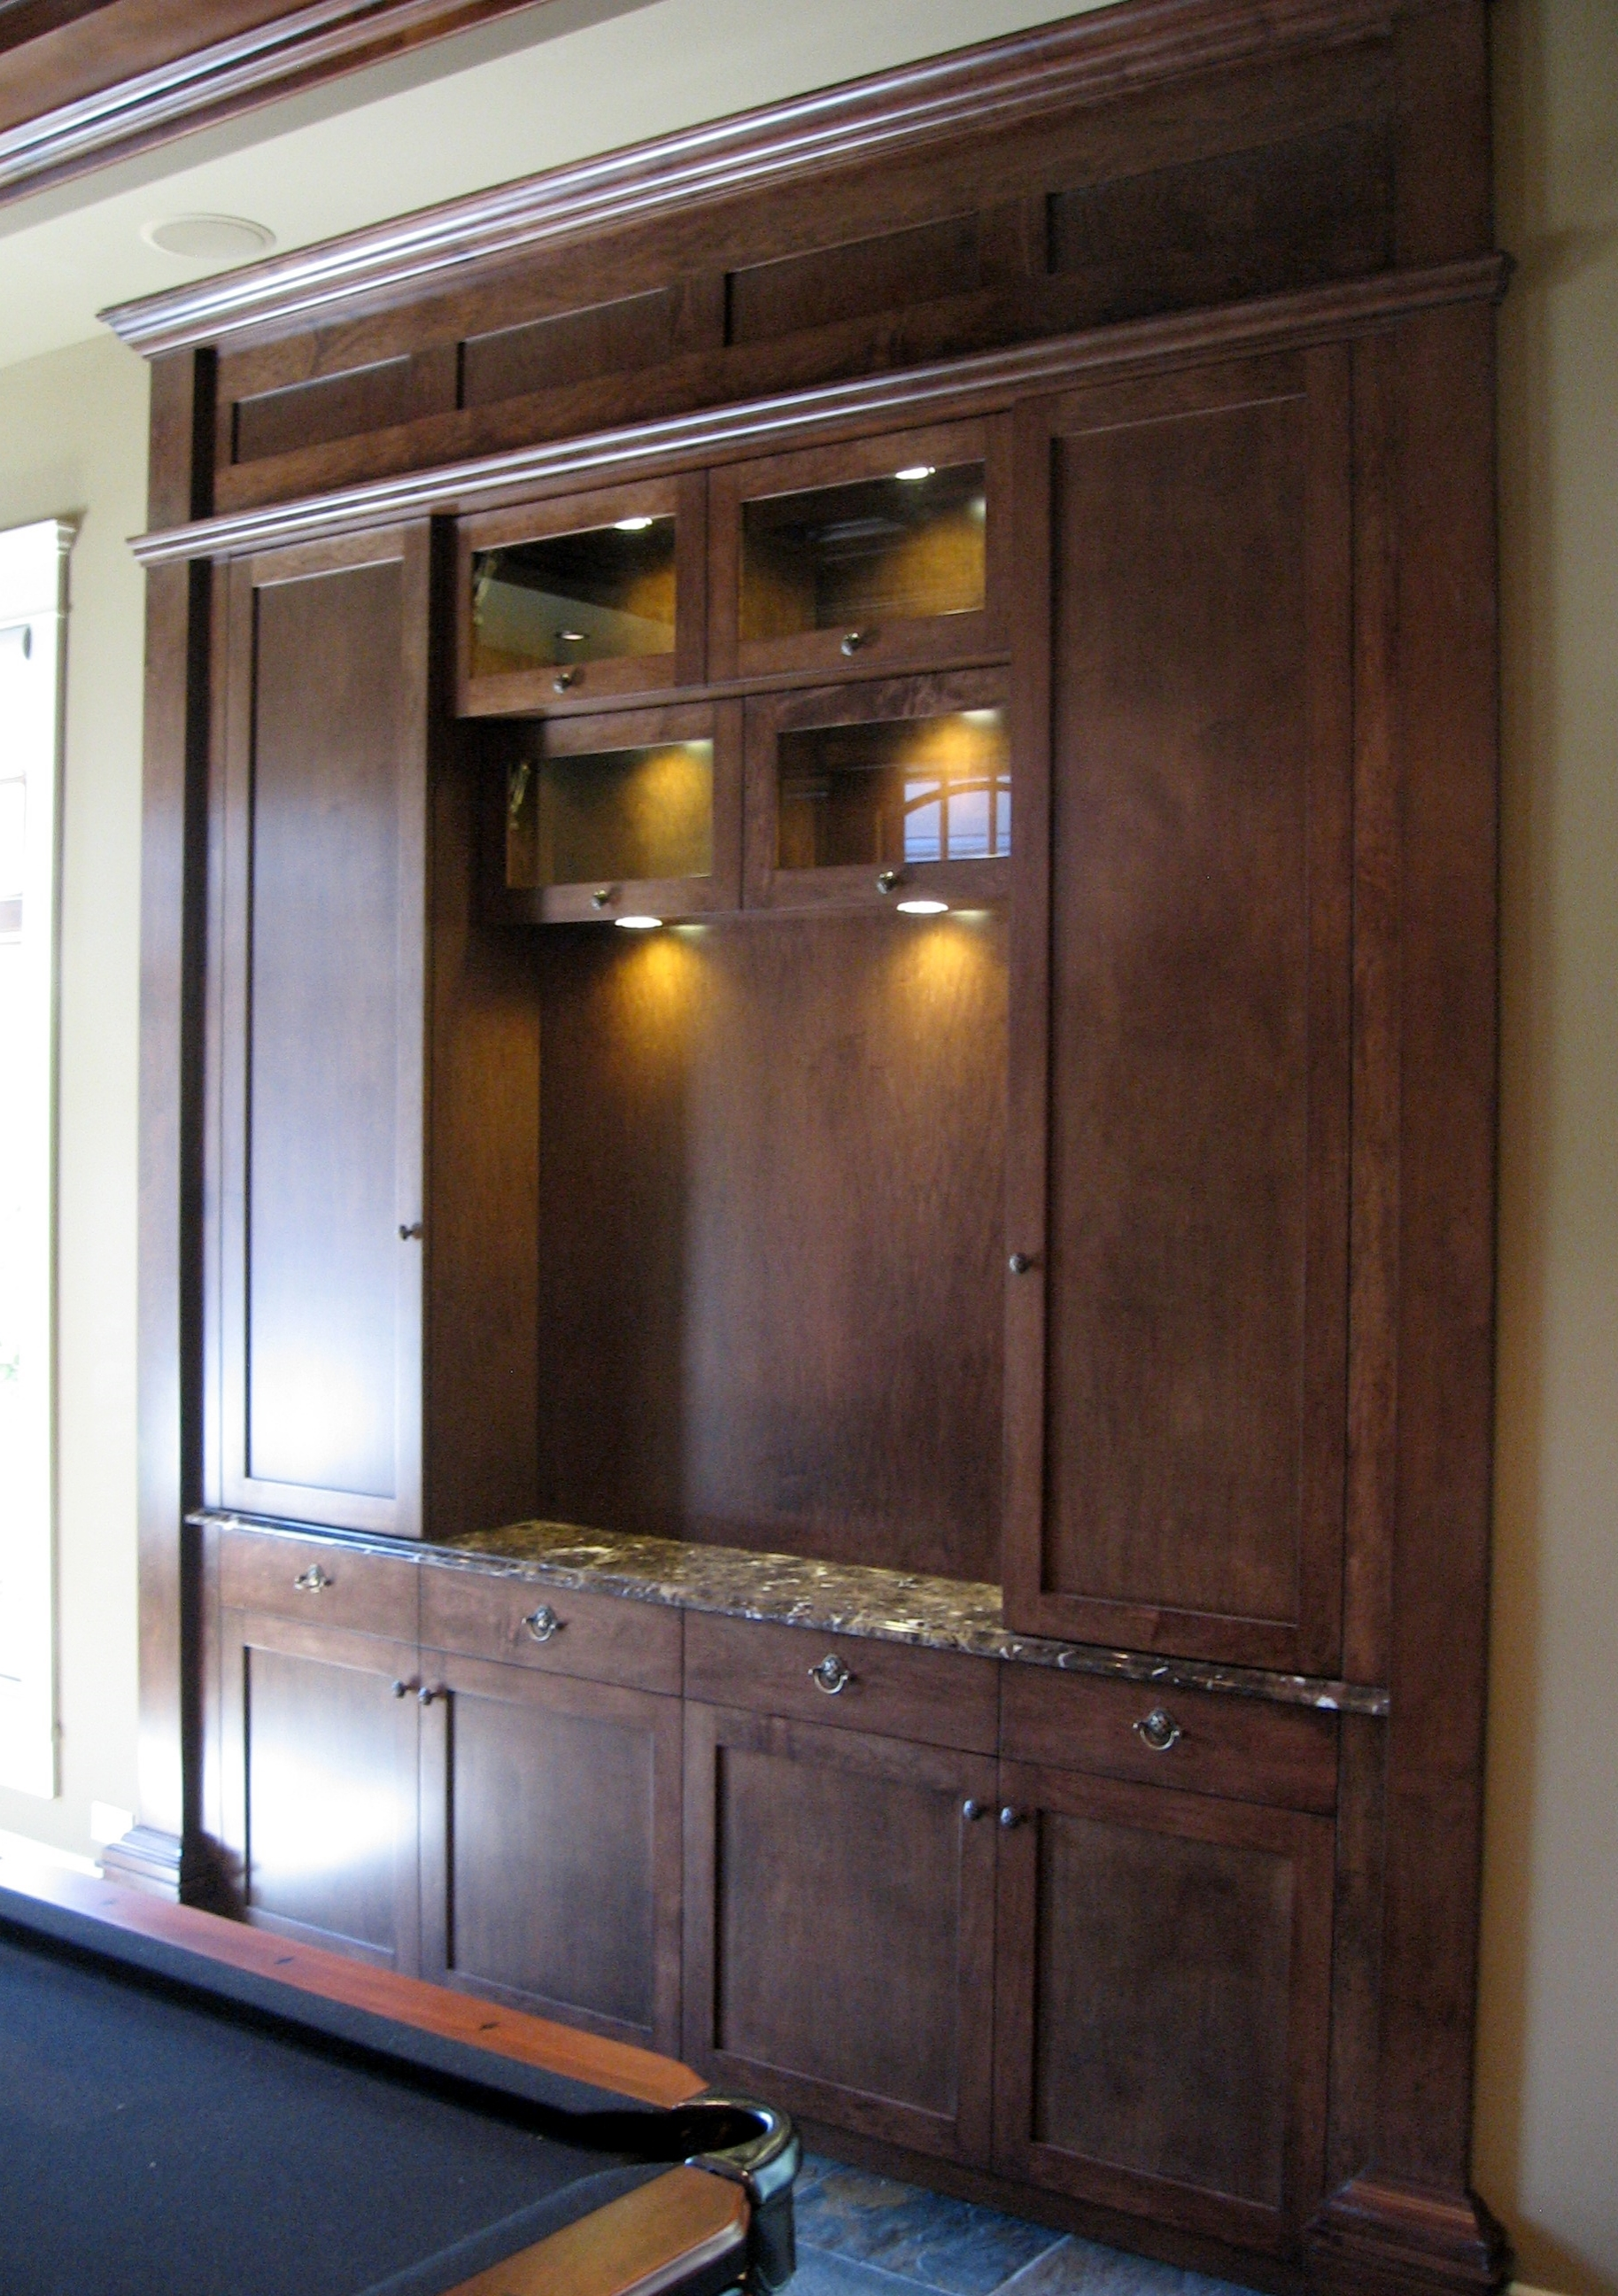 built-in-traditional-style-games-room-bar-cabinetry.JPG